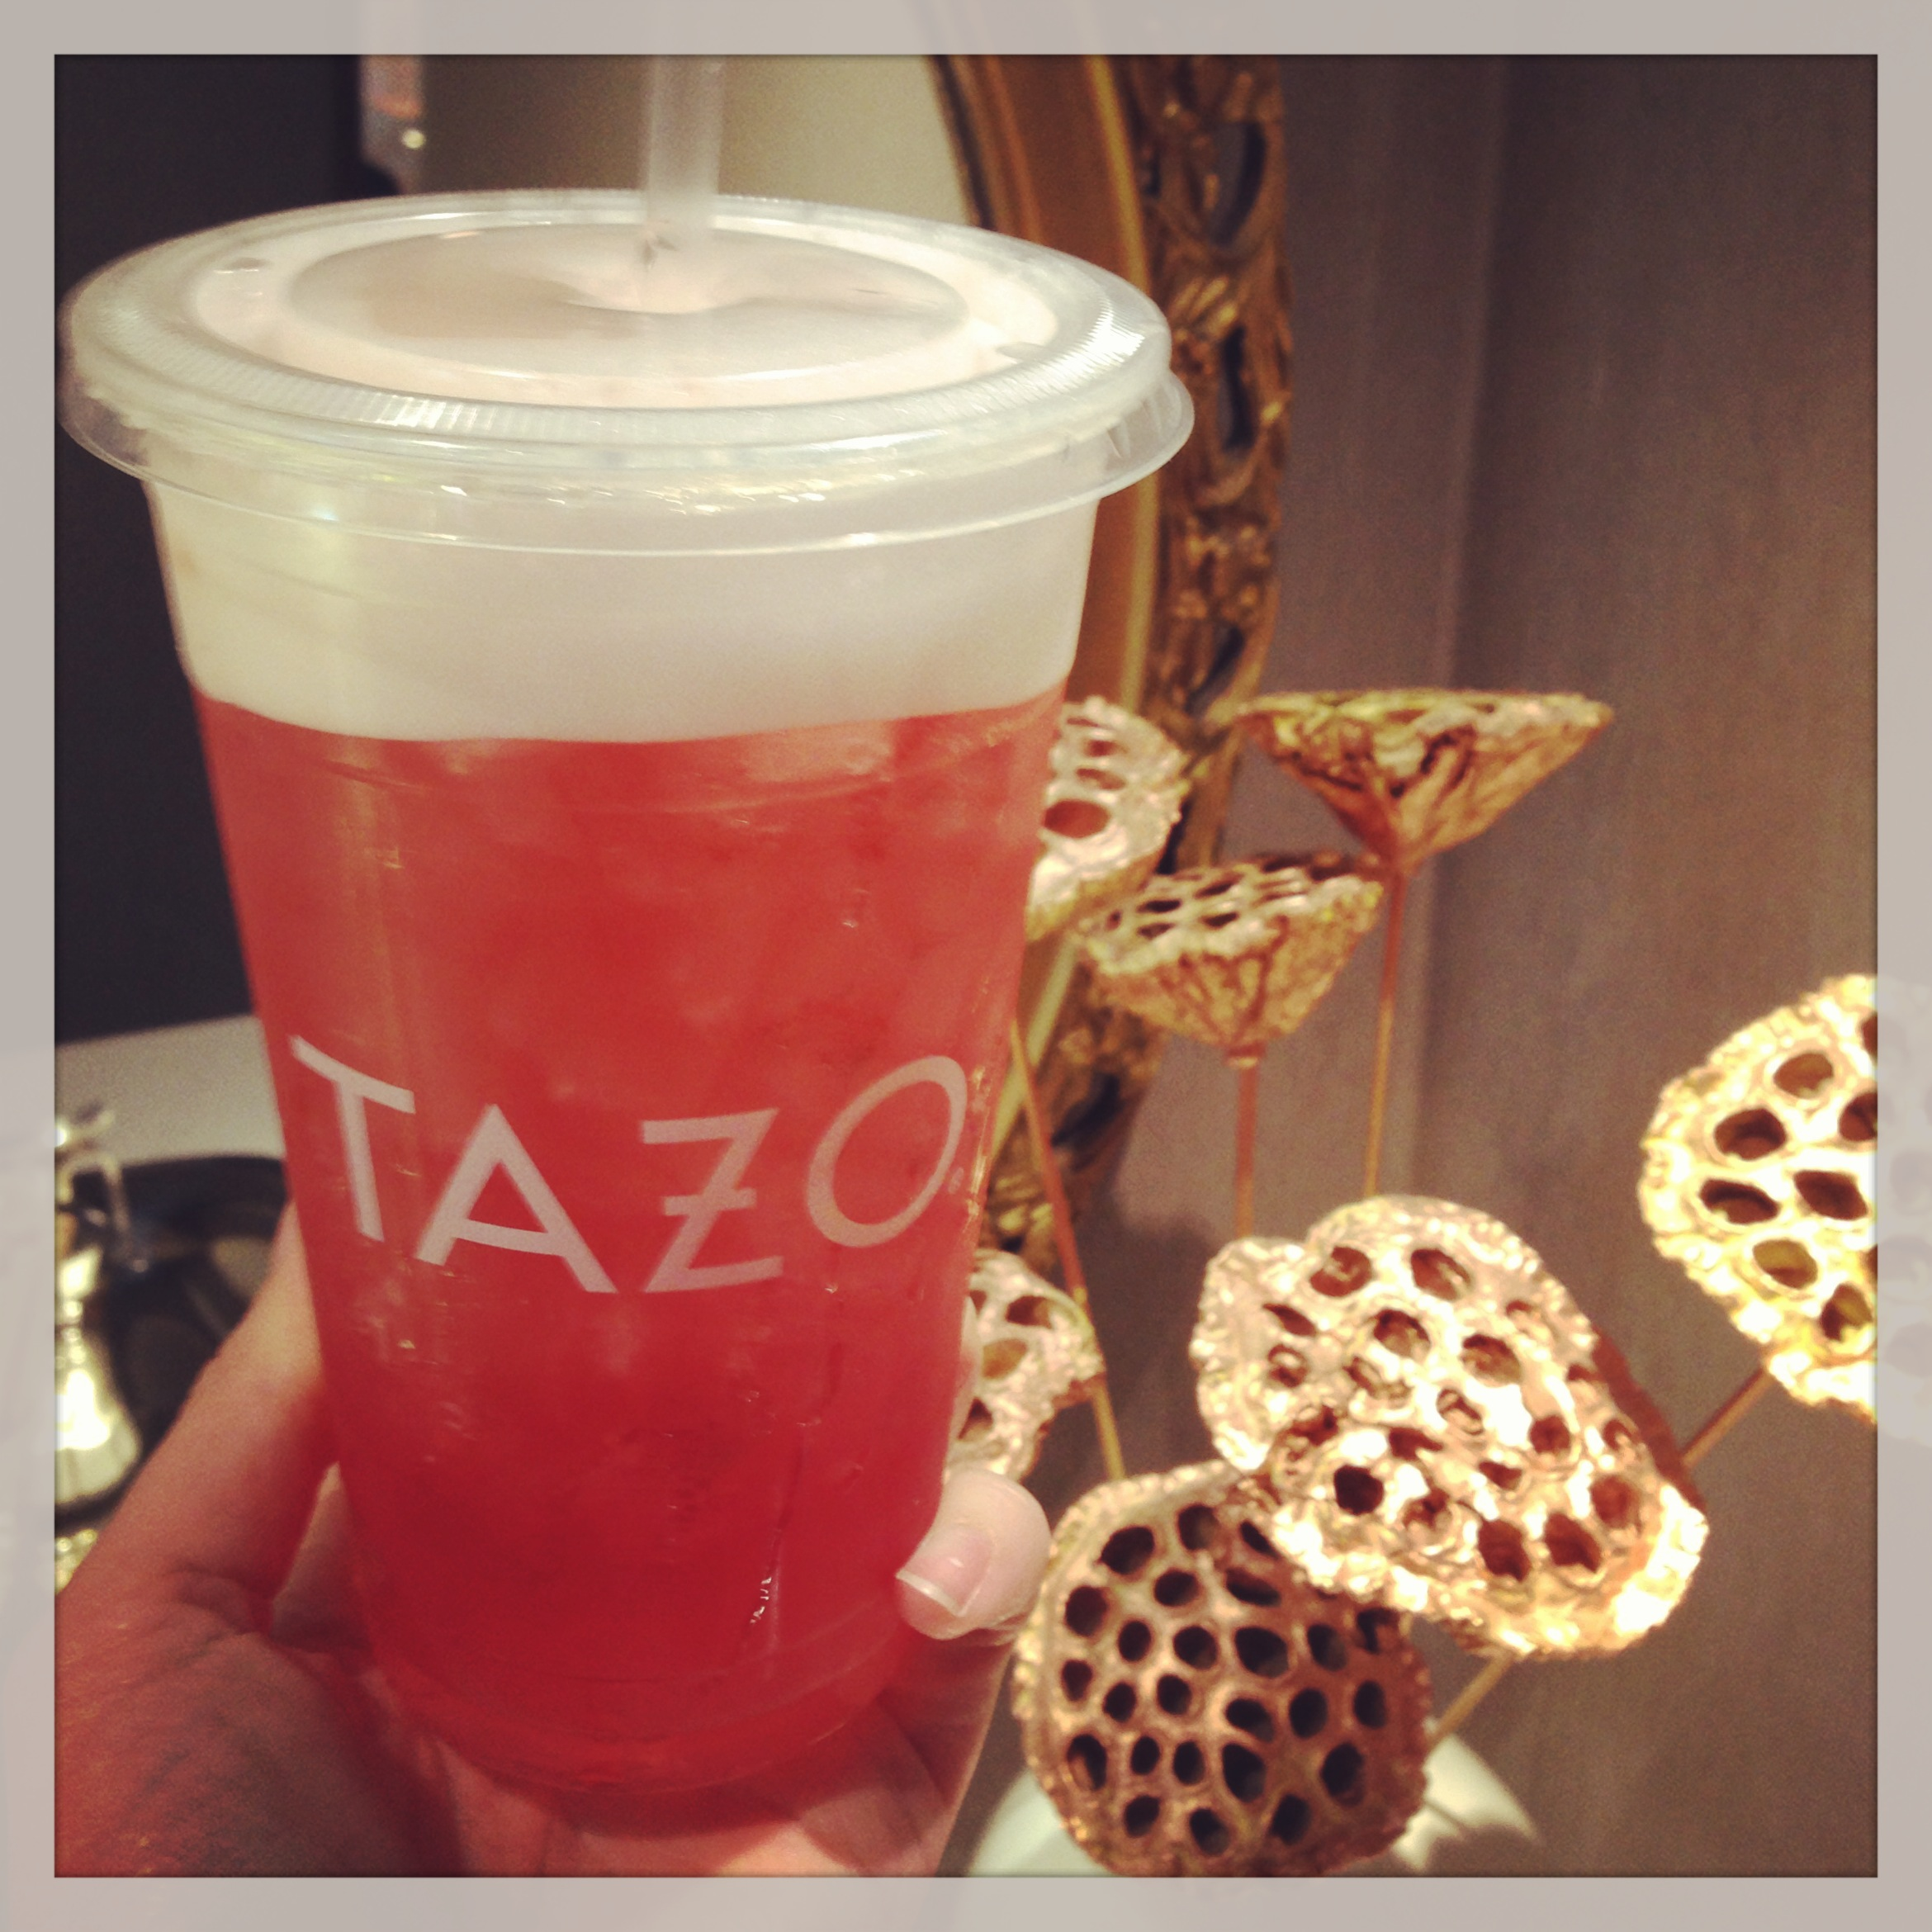 Tazo Tea Sparkling Sangria w: White Tips